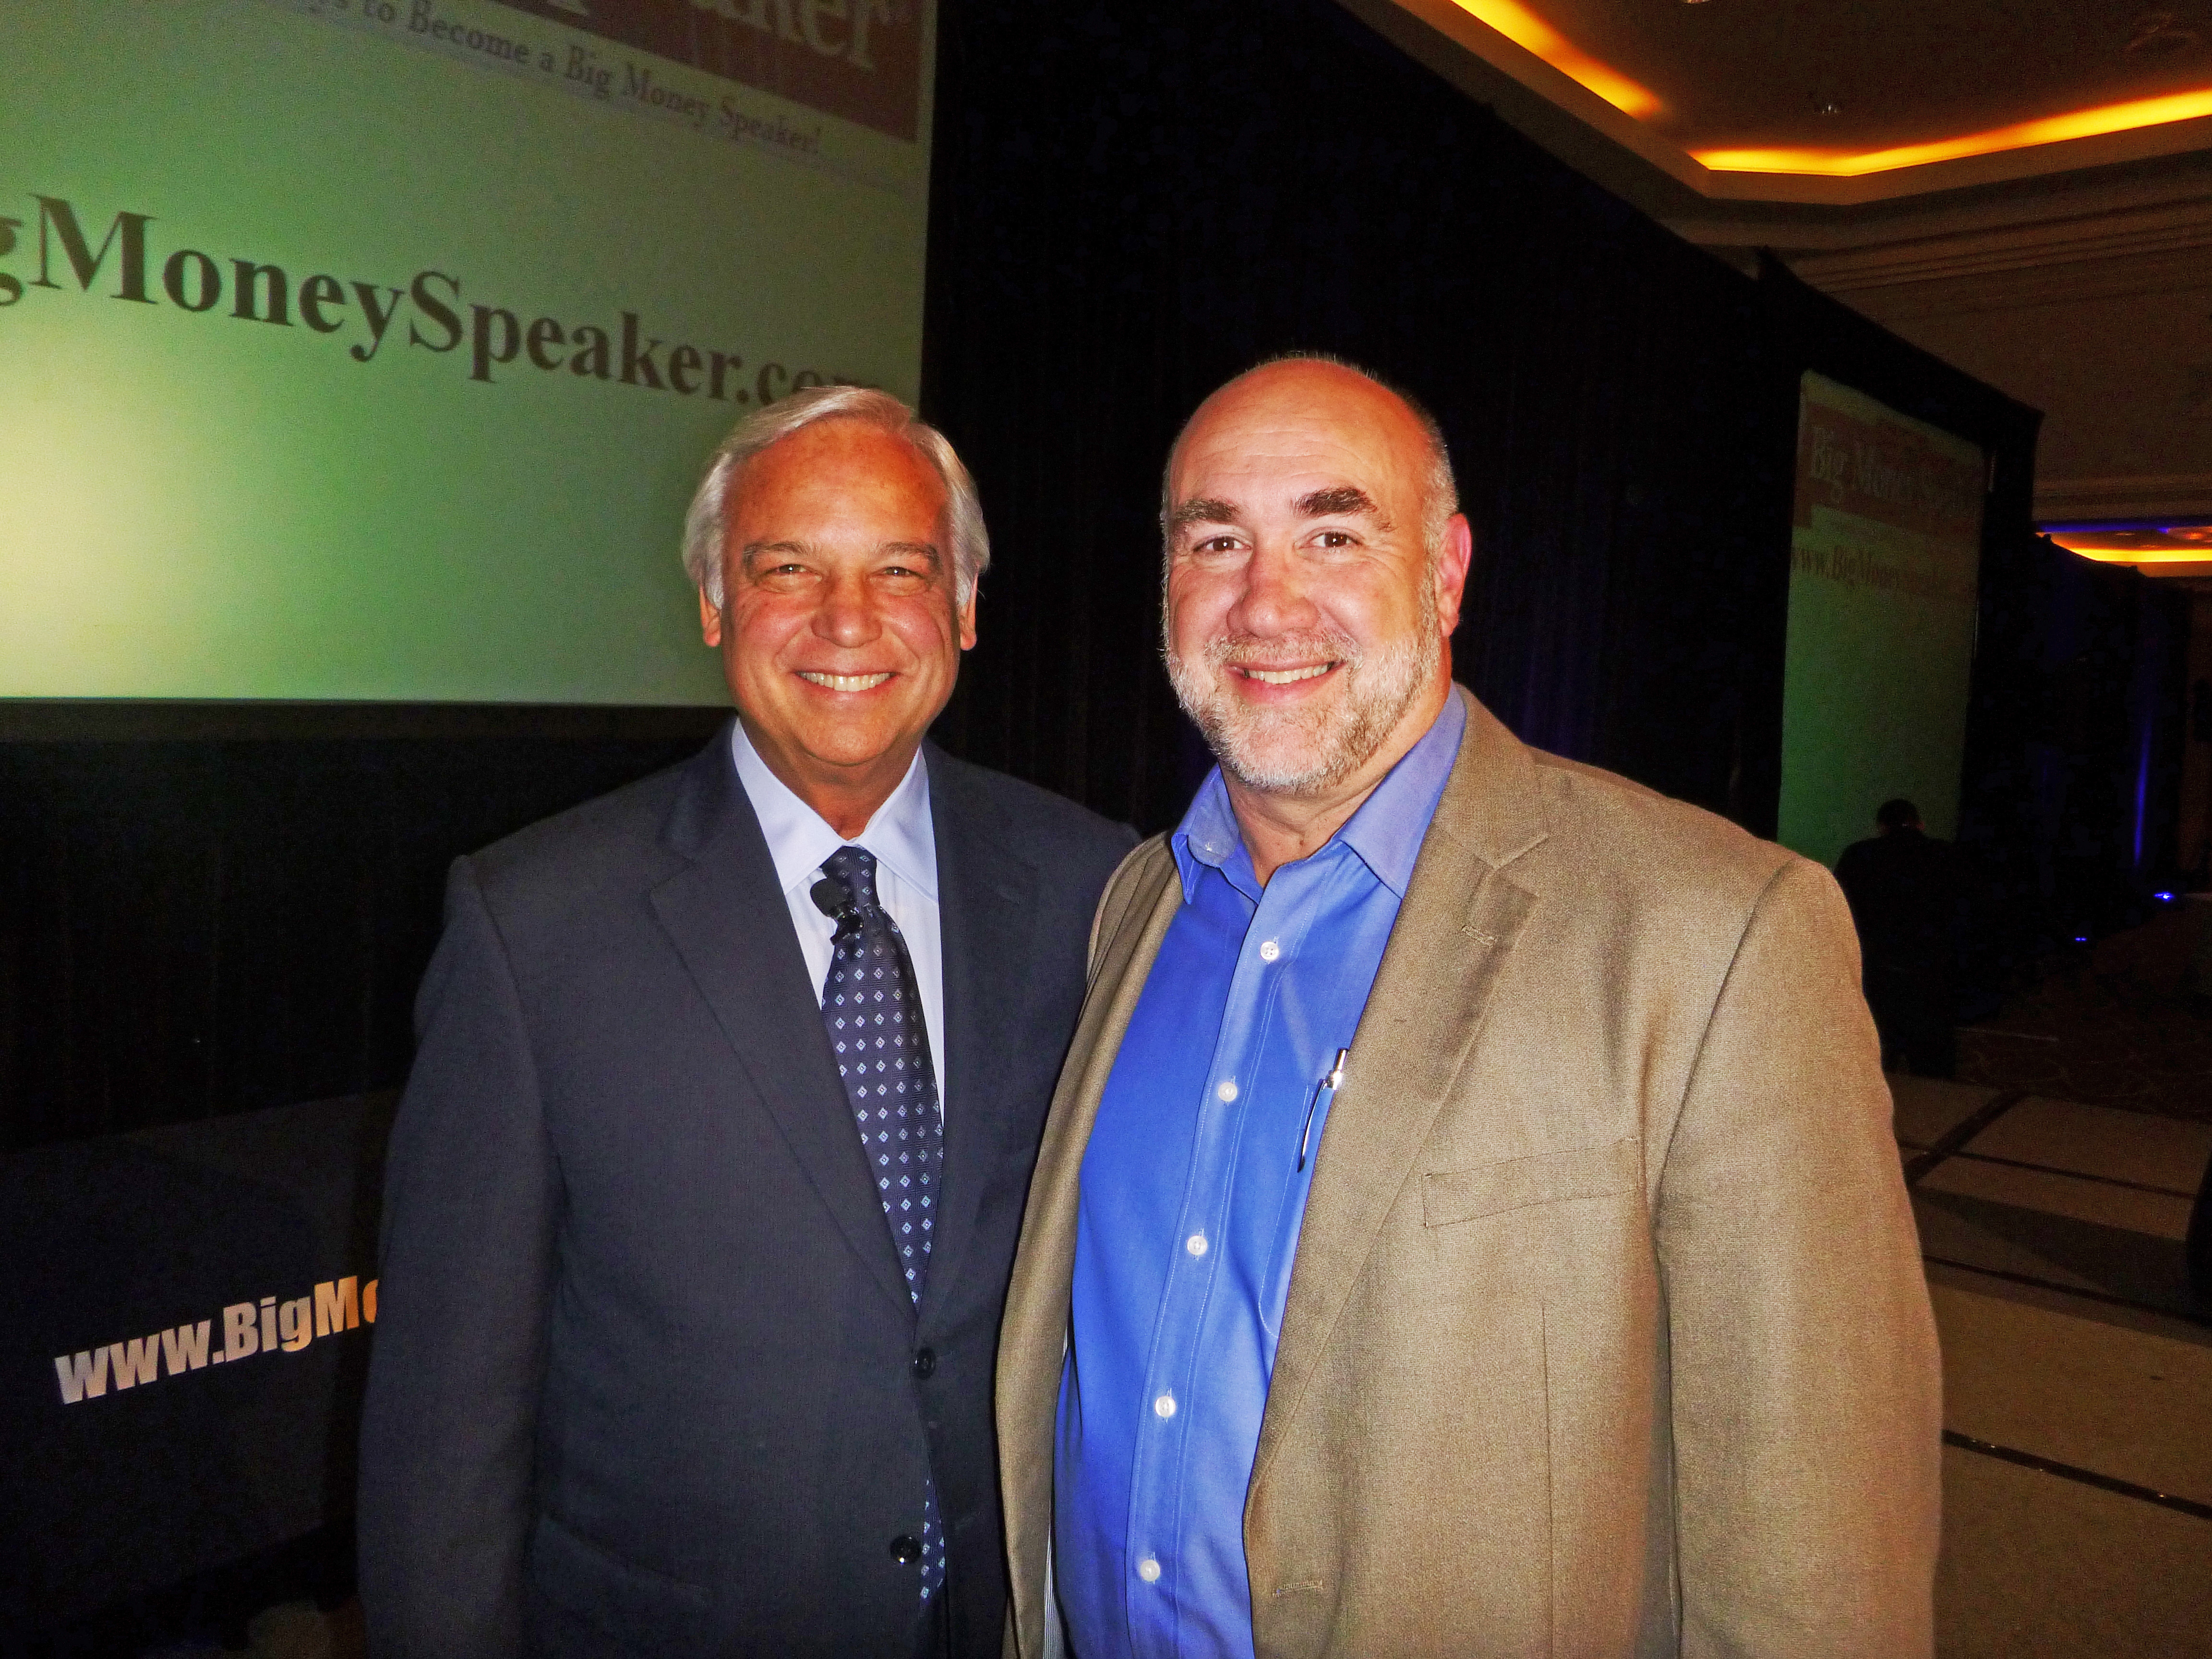 Dan with Jack Canfield